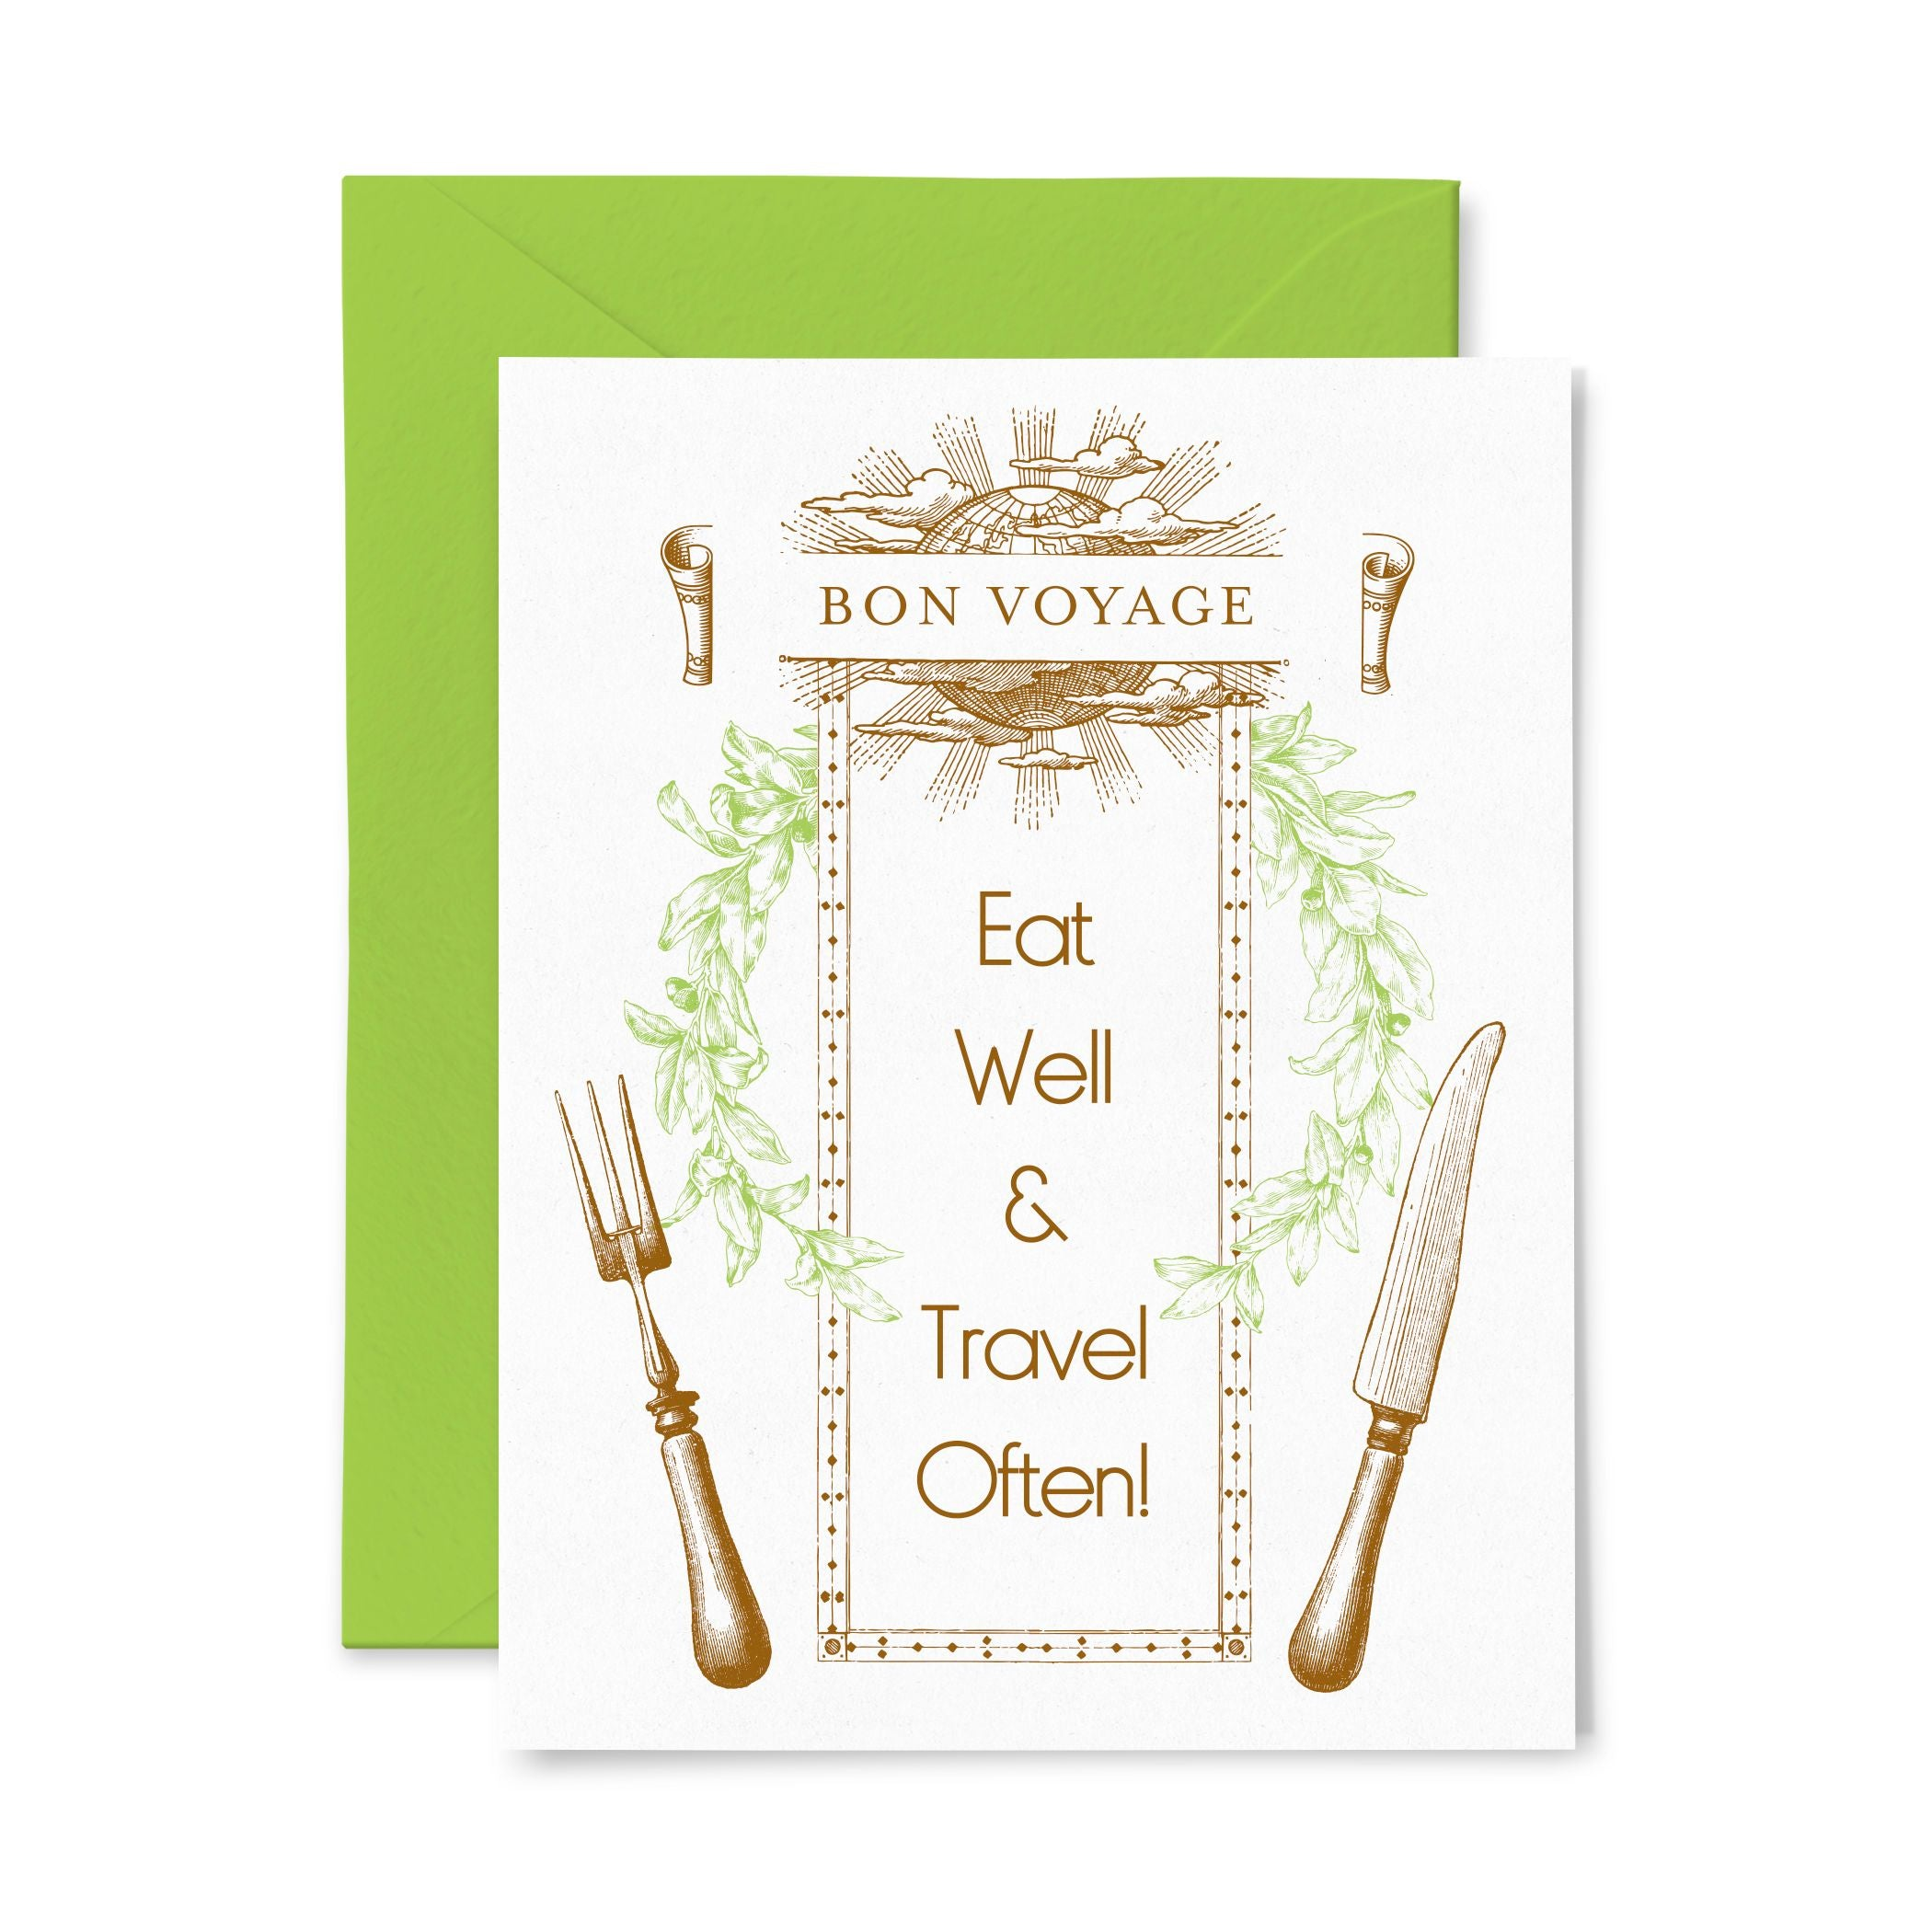 Bon Voyage | Multi-Use | Letterpress Greeting Card